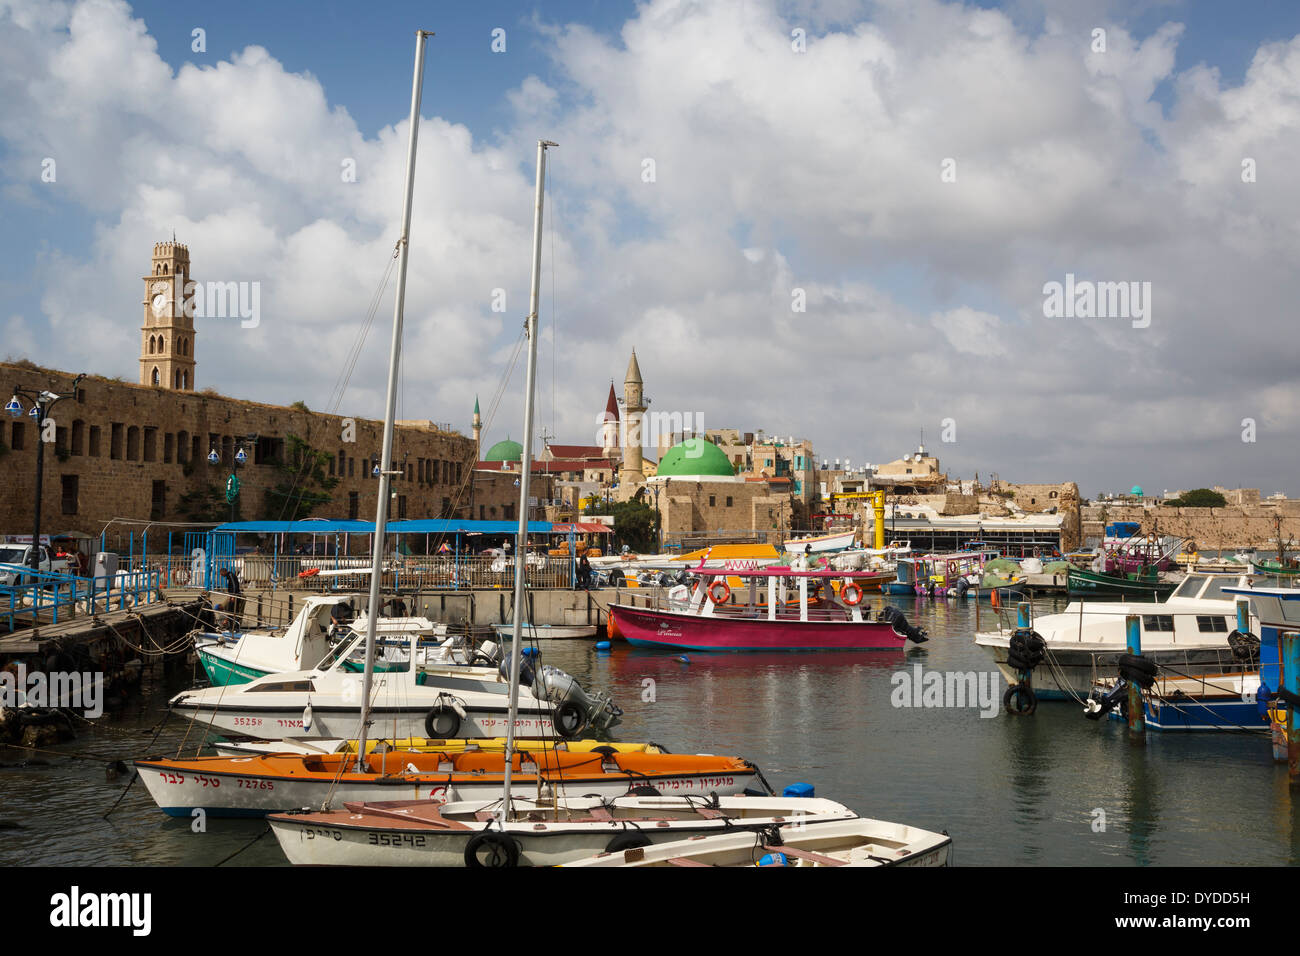 The port at the old city of Akko (Acre), Israel. - Stock Image